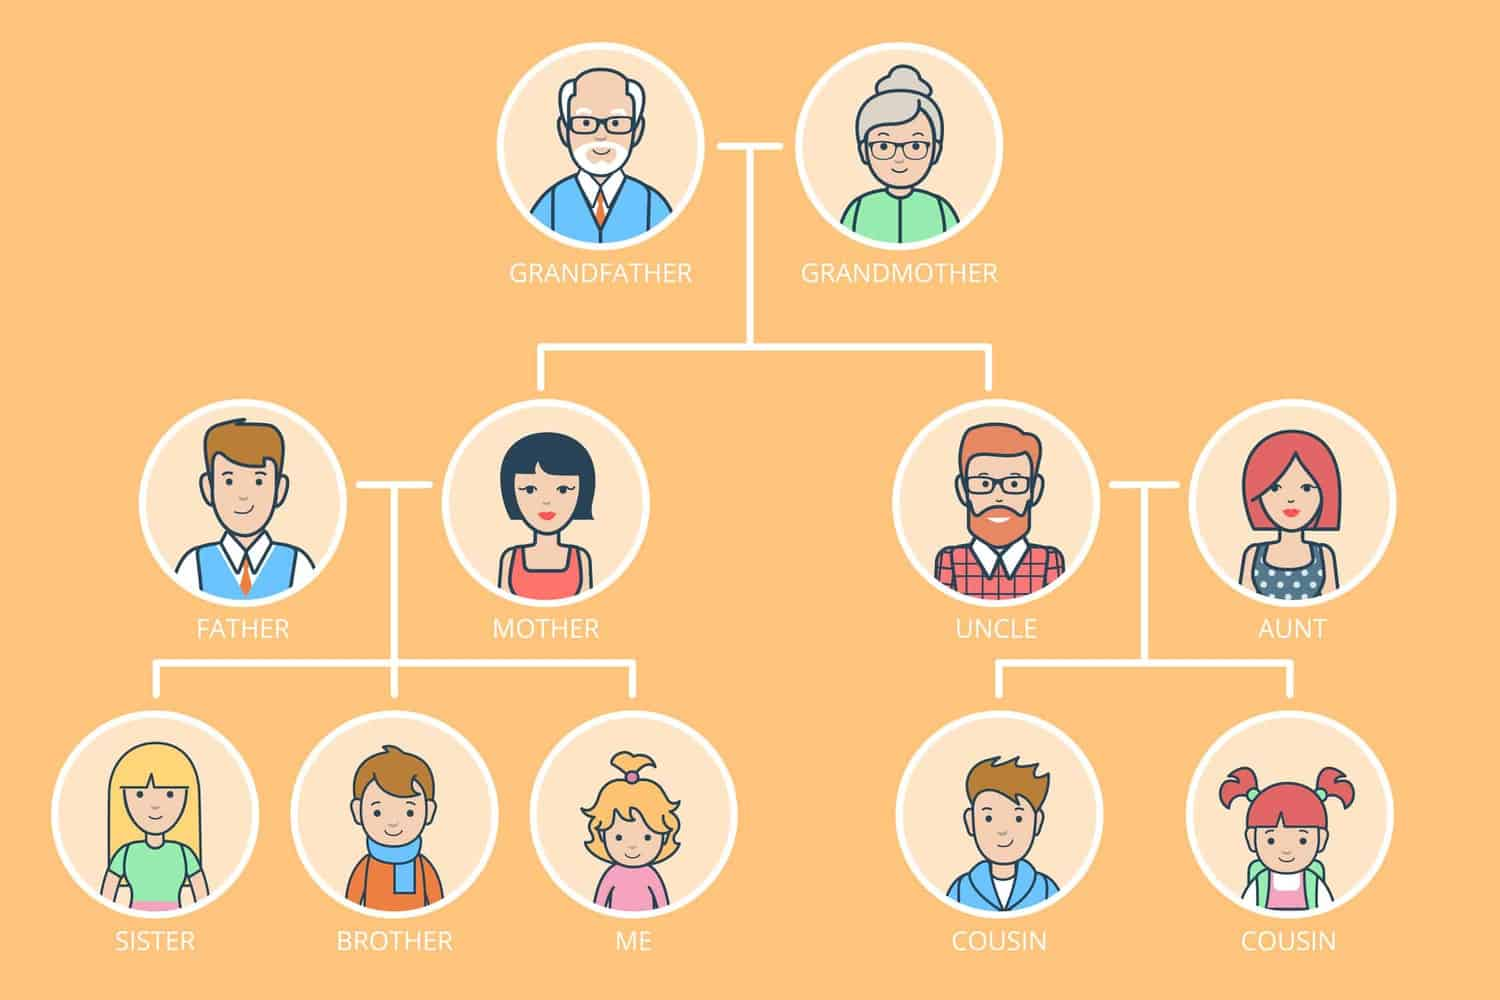 A family tree with three generations.